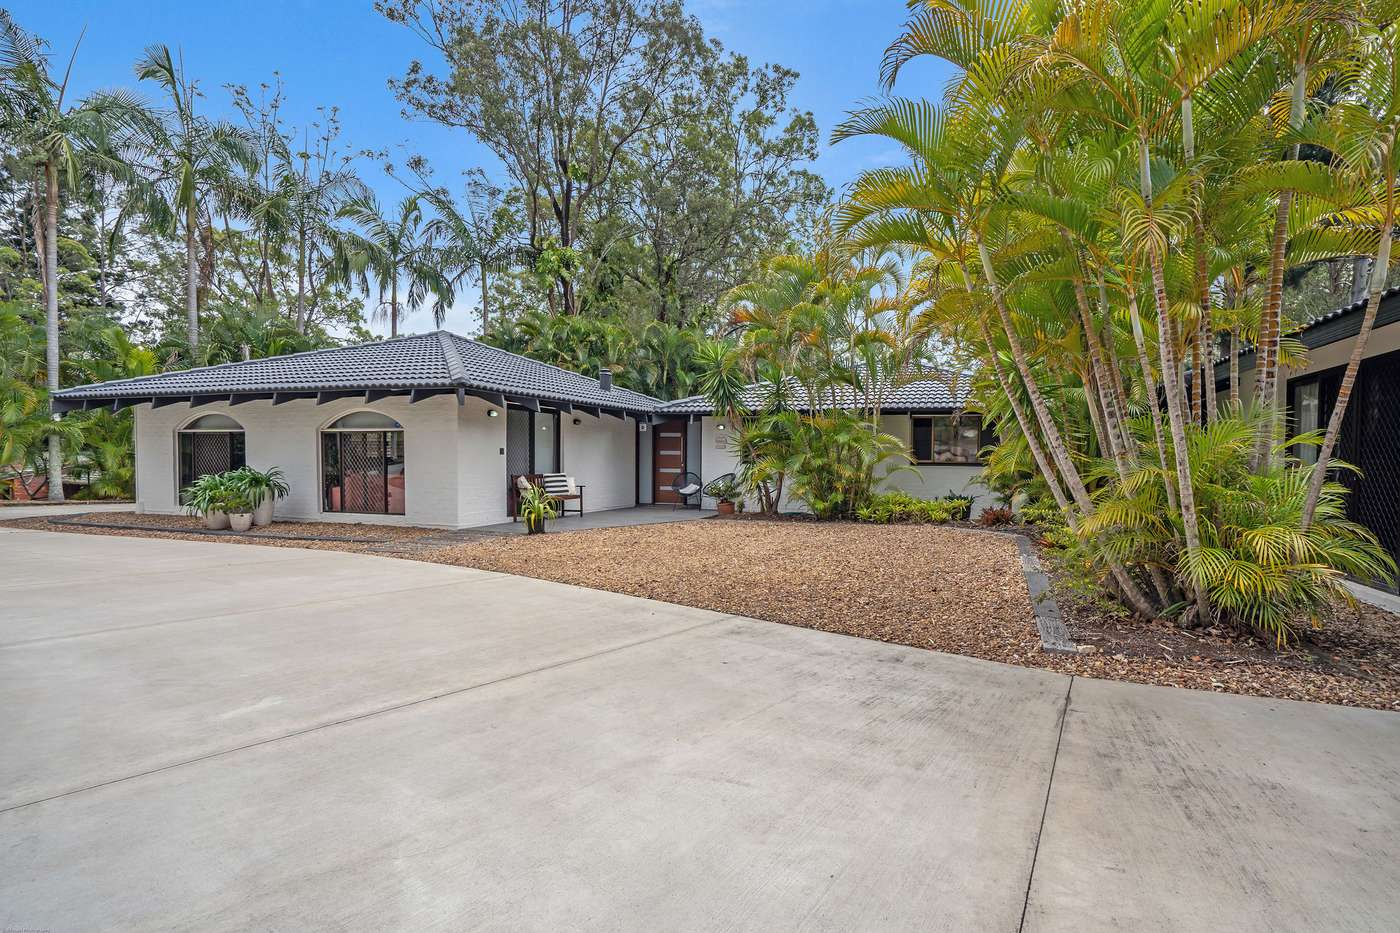 Main view of Homely house listing, 45 Plumbs Road, Tanah Merah, QLD 4128